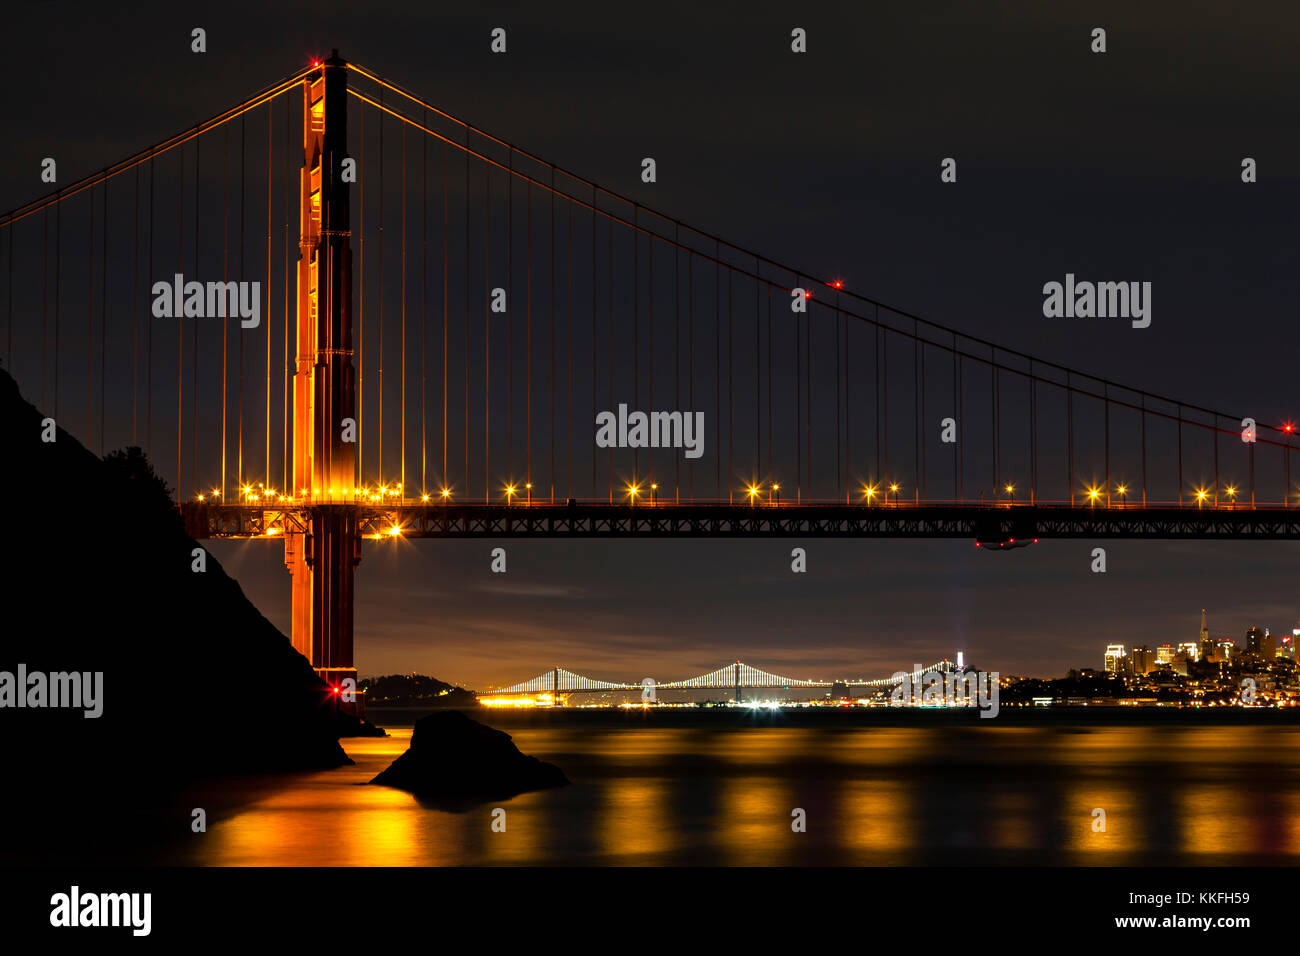 North Tower of the Golden Gate Bridge in the pre dawn hours with the Bay Bridge and San Francisco in the background. - Stock Image